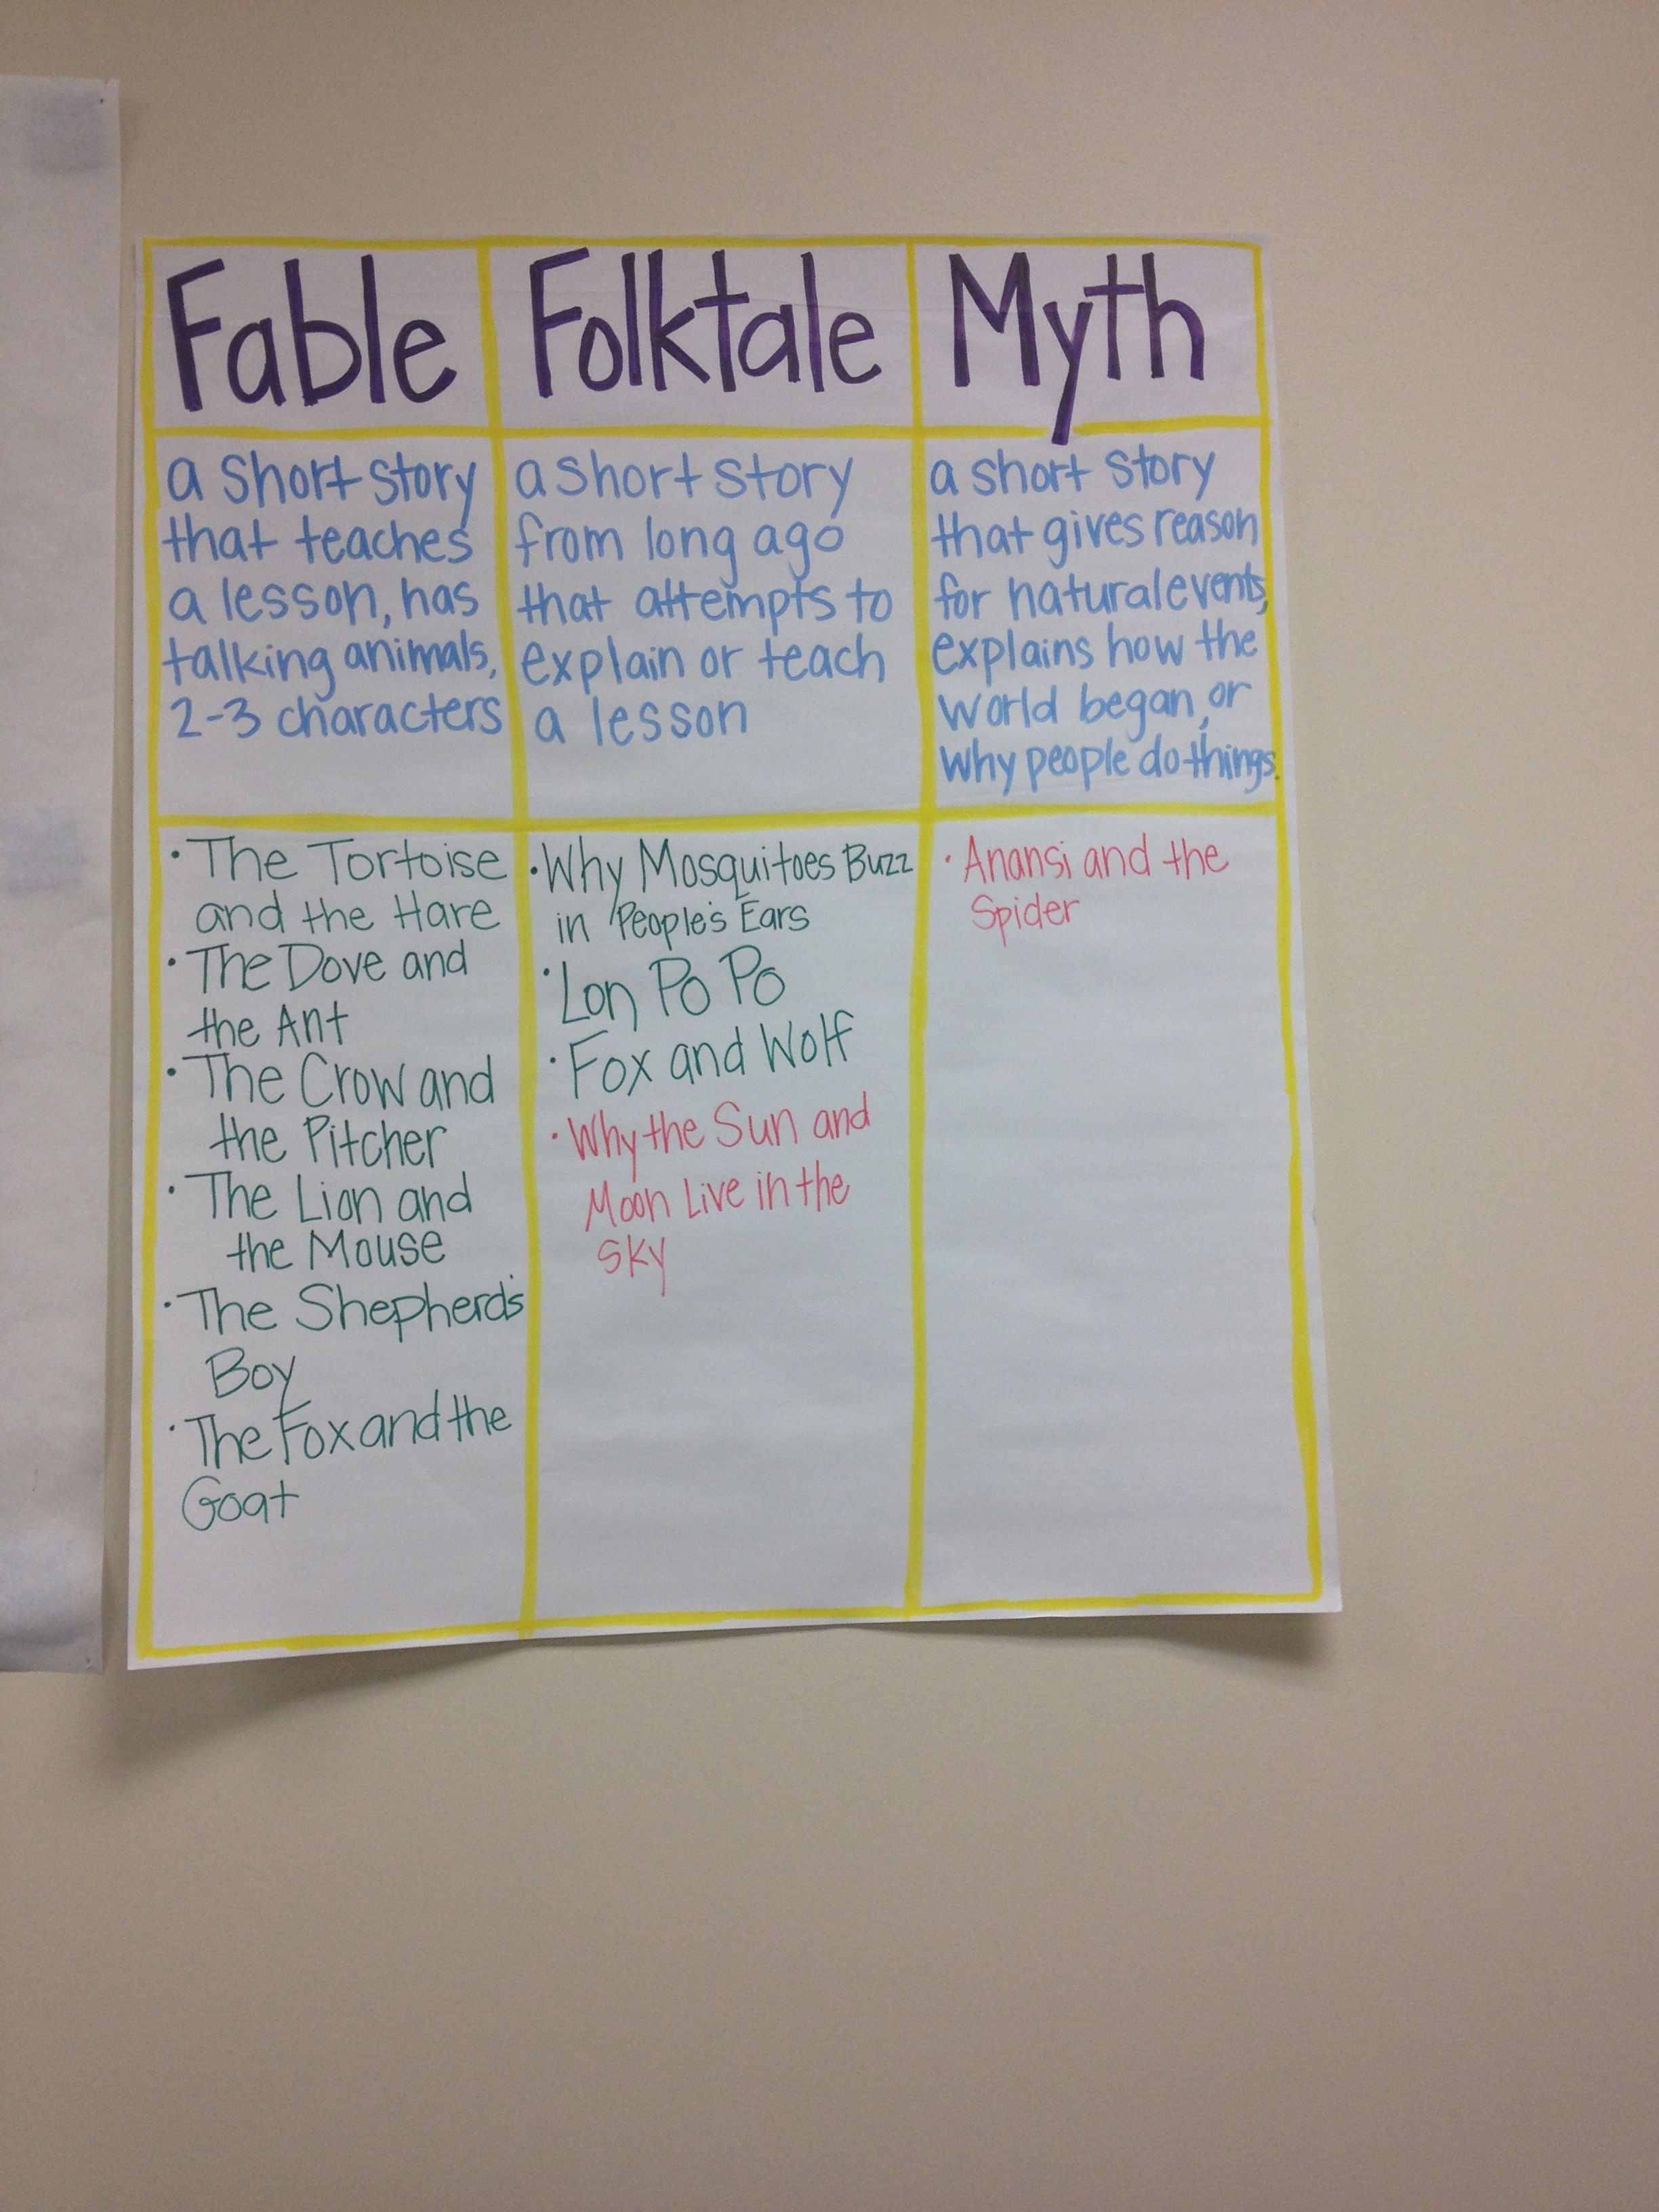 Fable Folktale Myth Anchor Chart Description Of Each